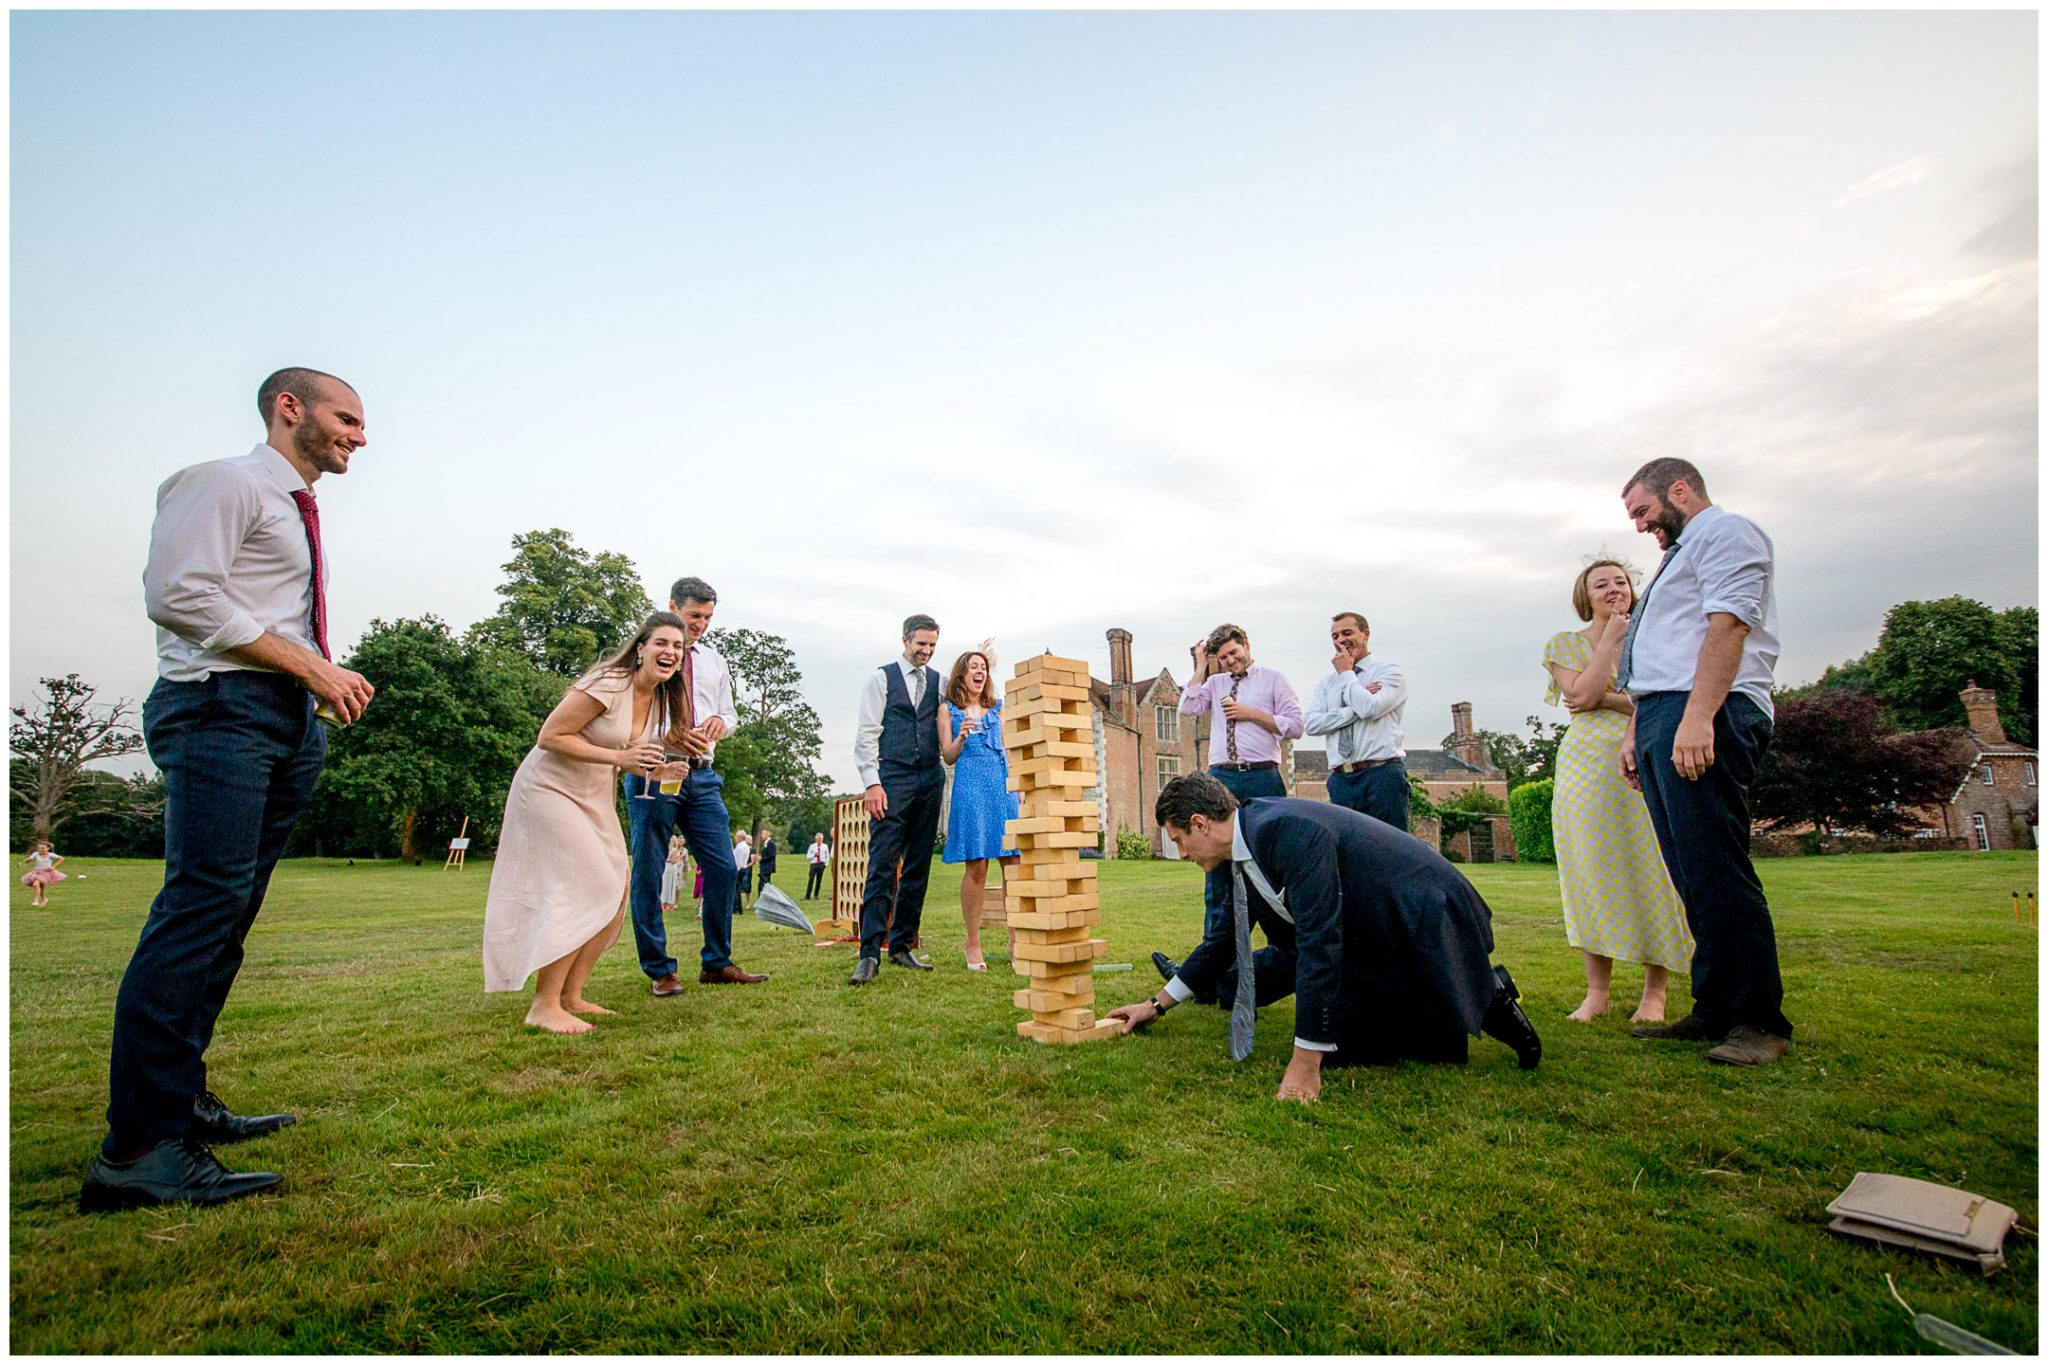 Giant Jenga on the rear lawn